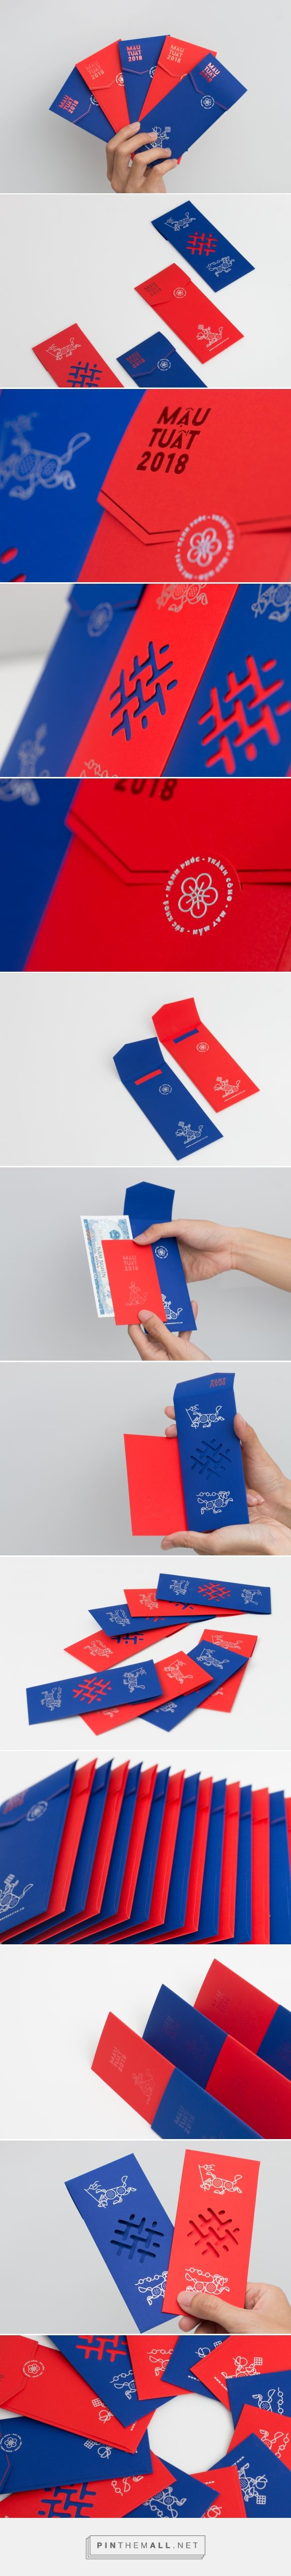 The Year Of Five Dogs Red Packet Envelopes - Packaging of the World - Creative Package Design Gallery - http://www.packagingoftheworld.com/2018/01/the-year-of-five-dogs.html